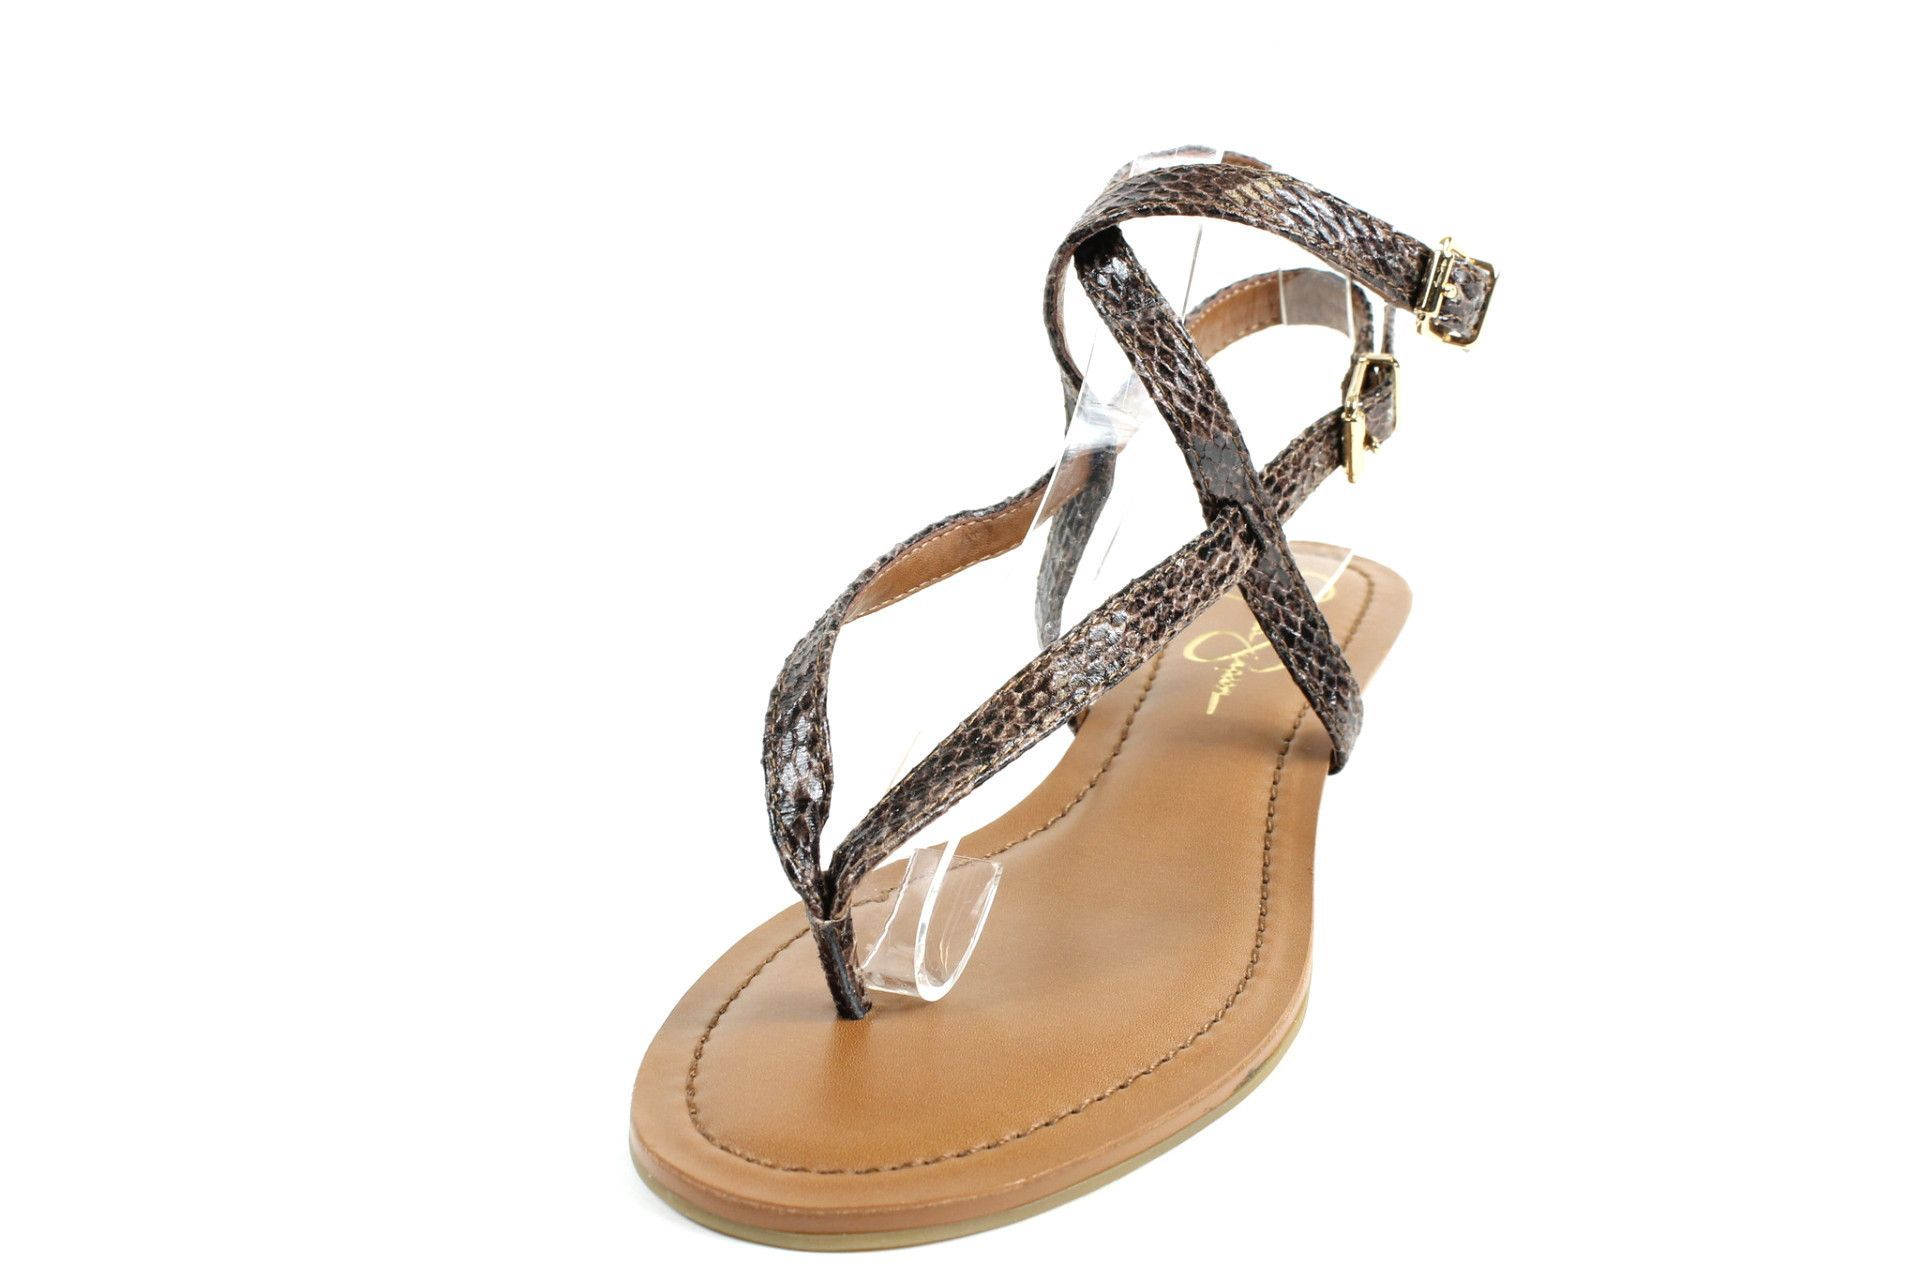 Jessica Simpson Natural/Taupe Brazilian Snake Liliane Strappy Sandals